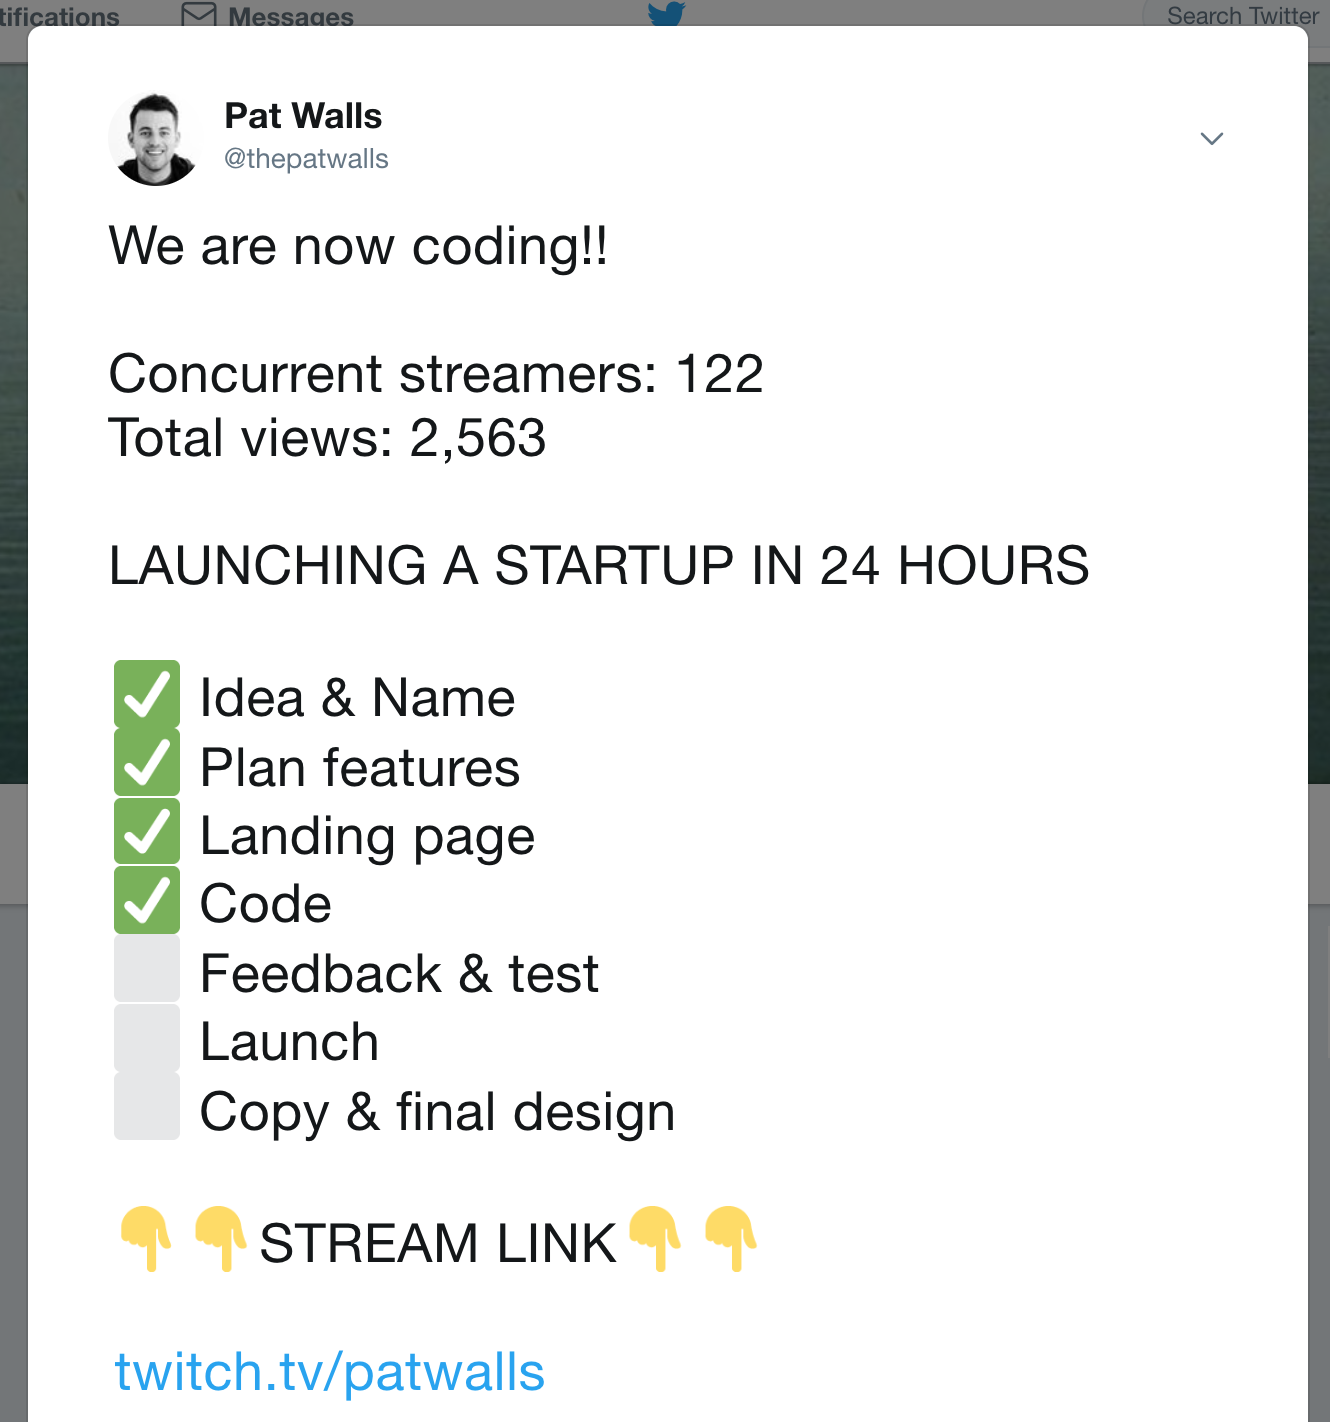 How To Have A Successful 24 Hour Startup - 24hrstartup com